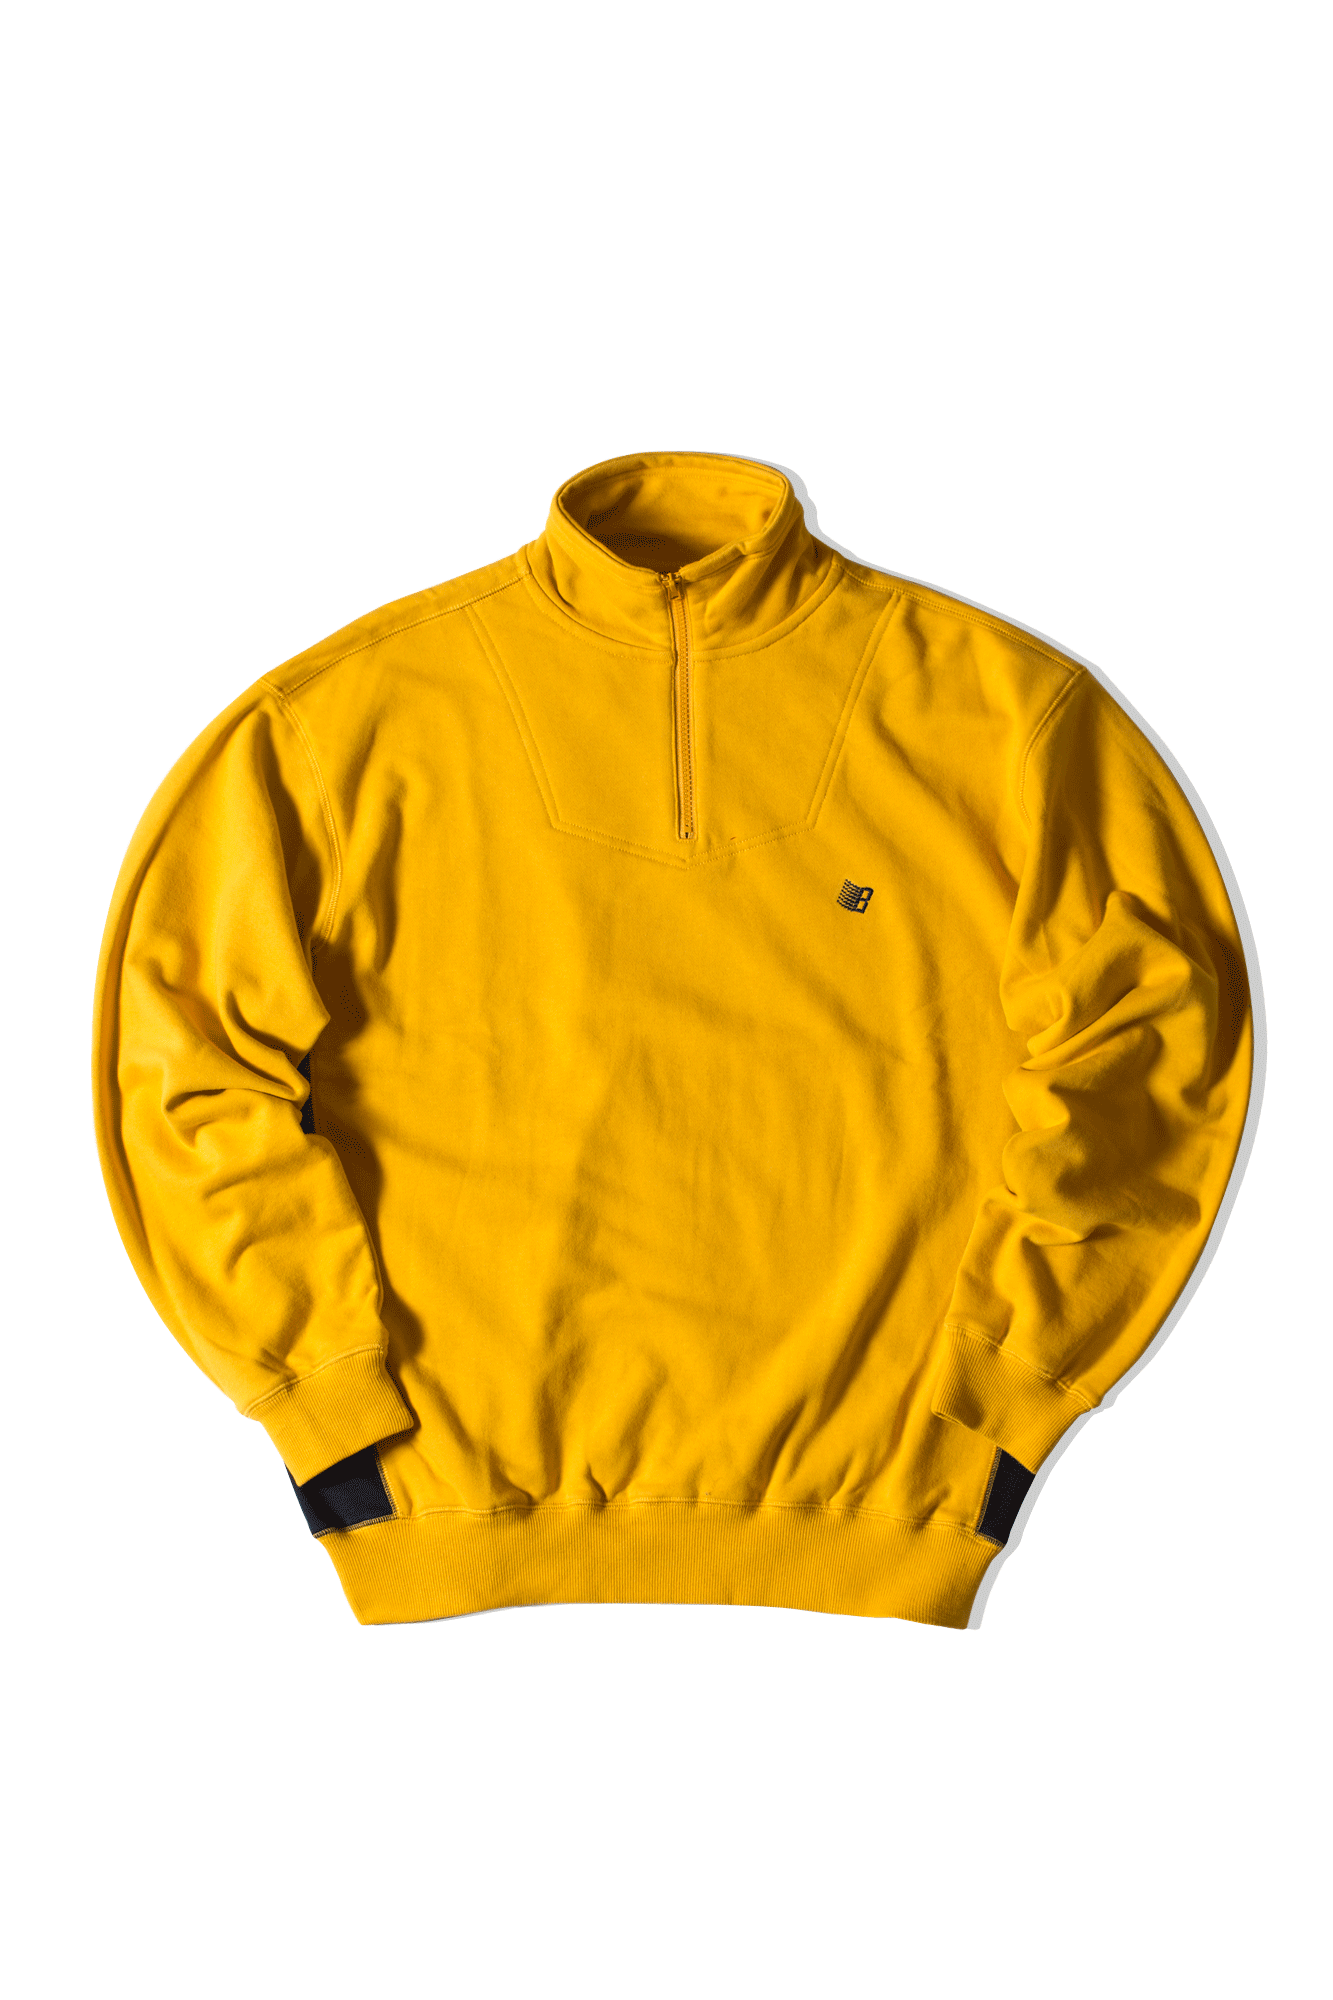 Quarter Zip-up sweatshirt Giallo